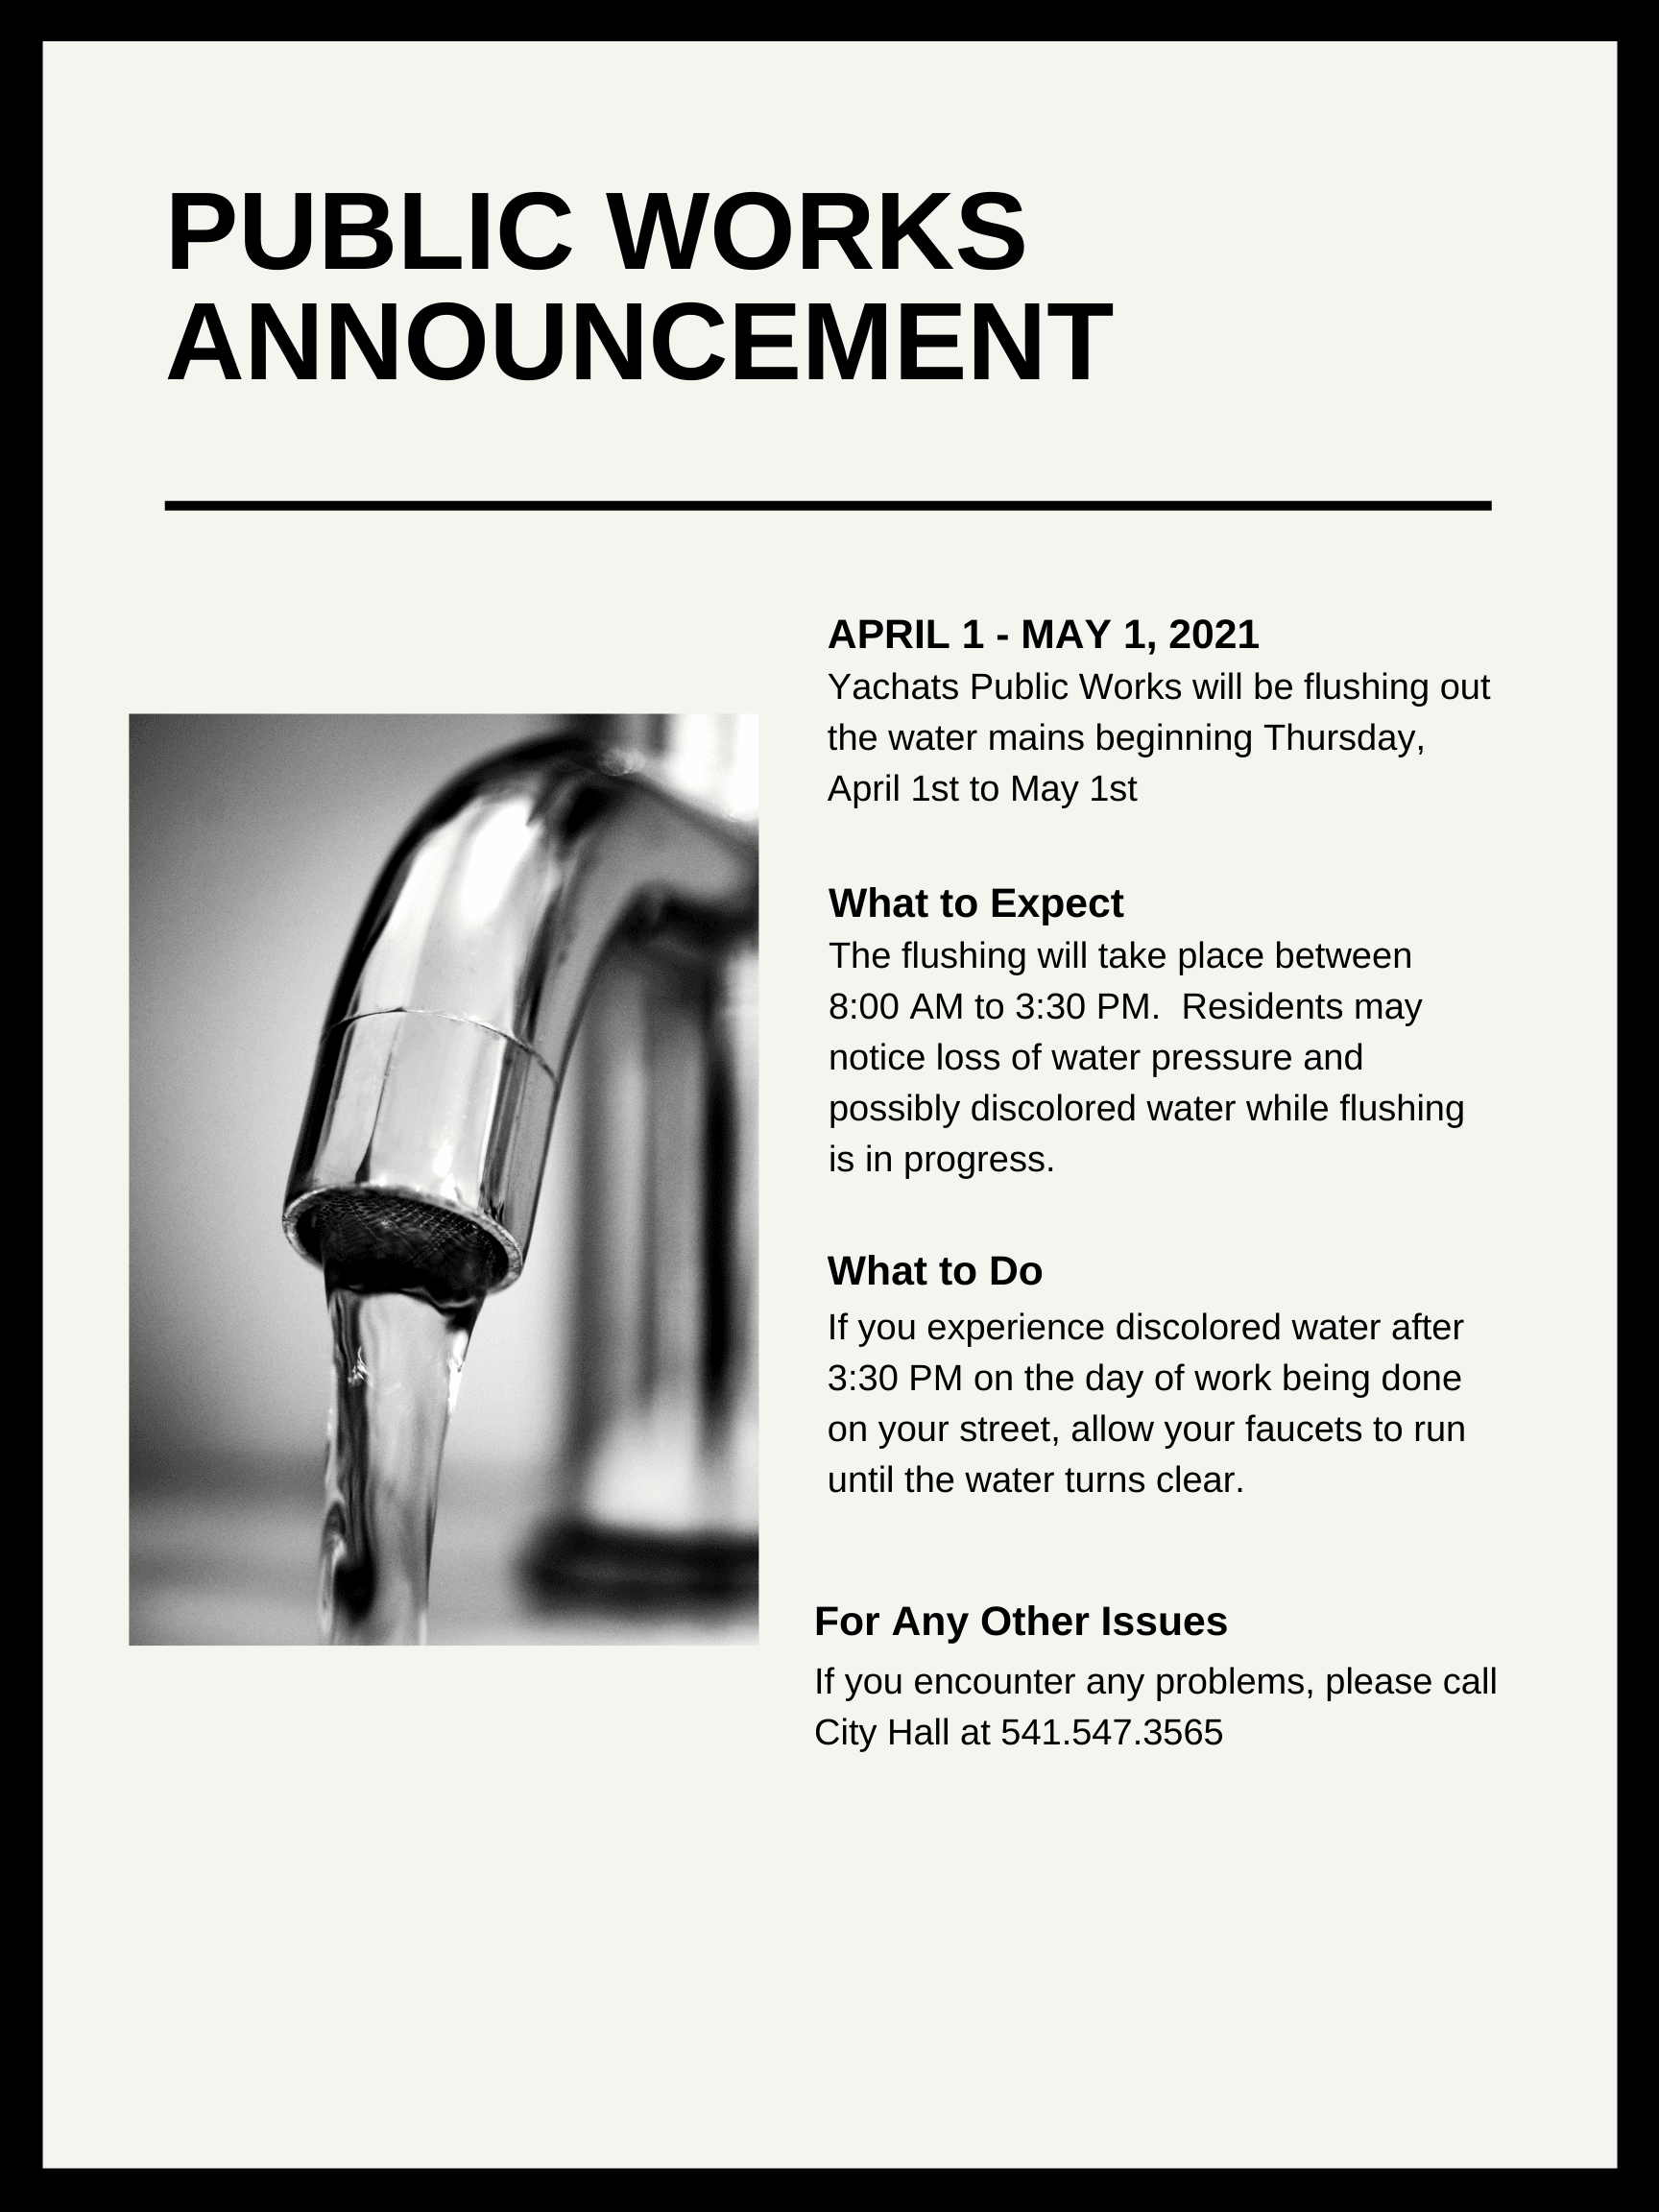 Public Works Announcement on Water Flushing